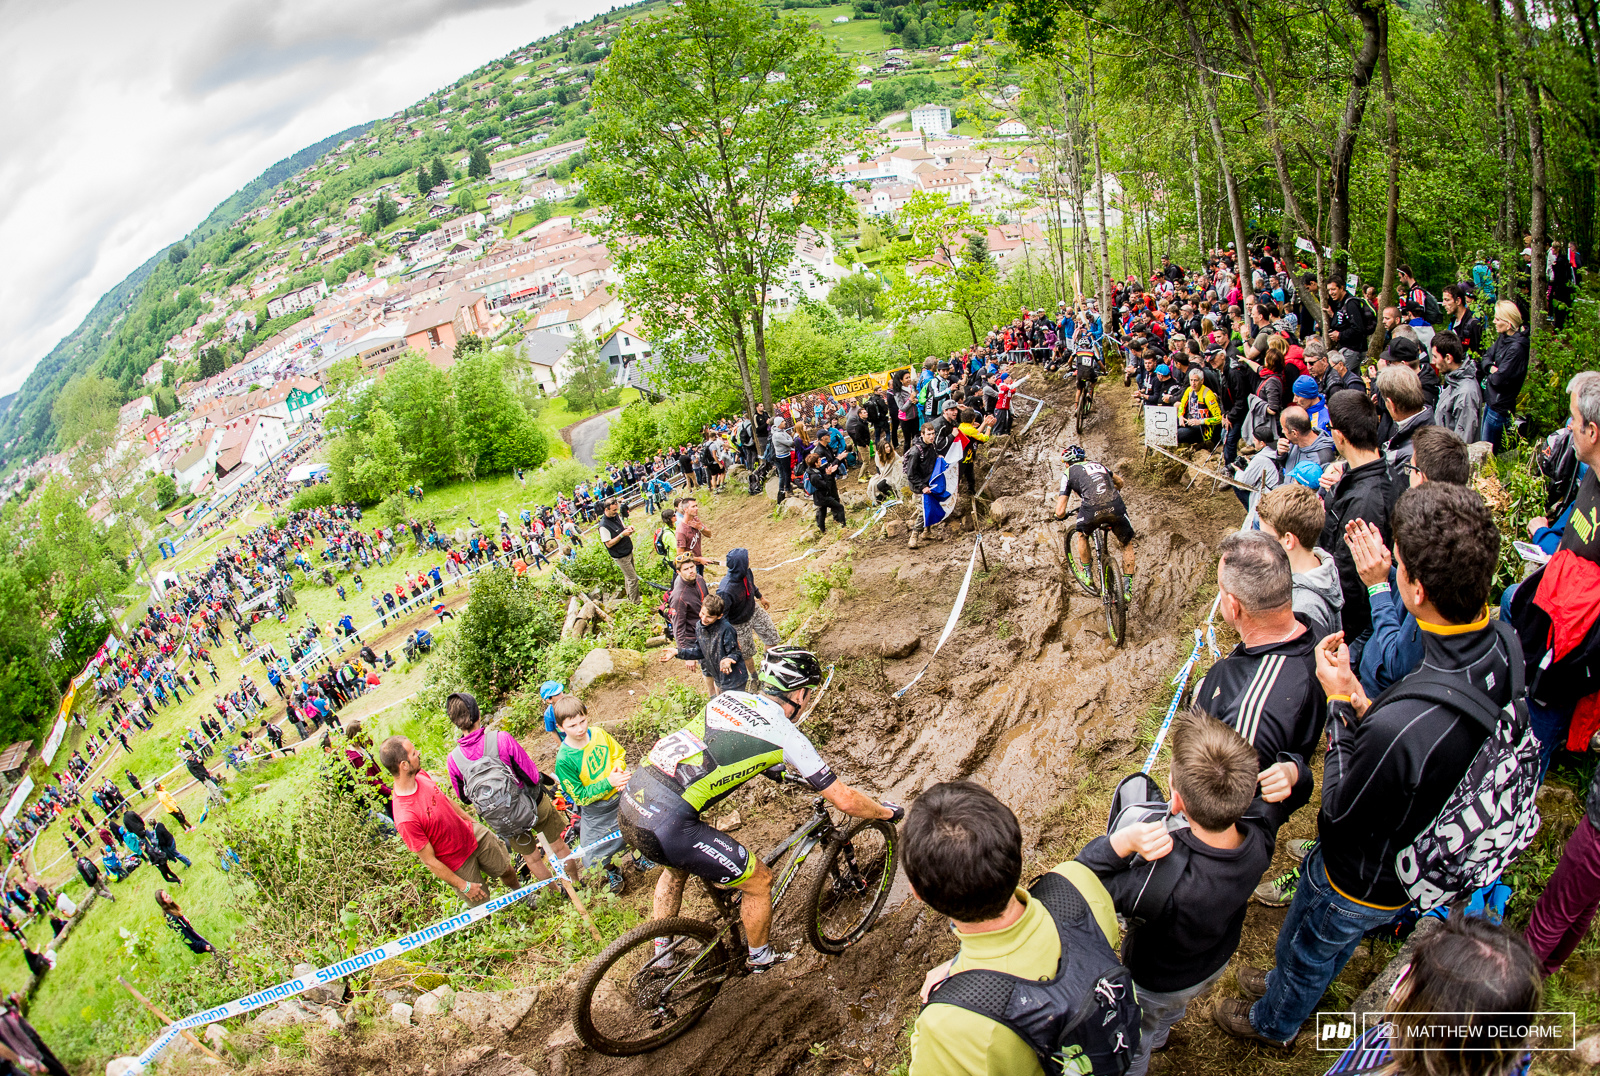 It was one big slip and slide through the crowd at the last descent.